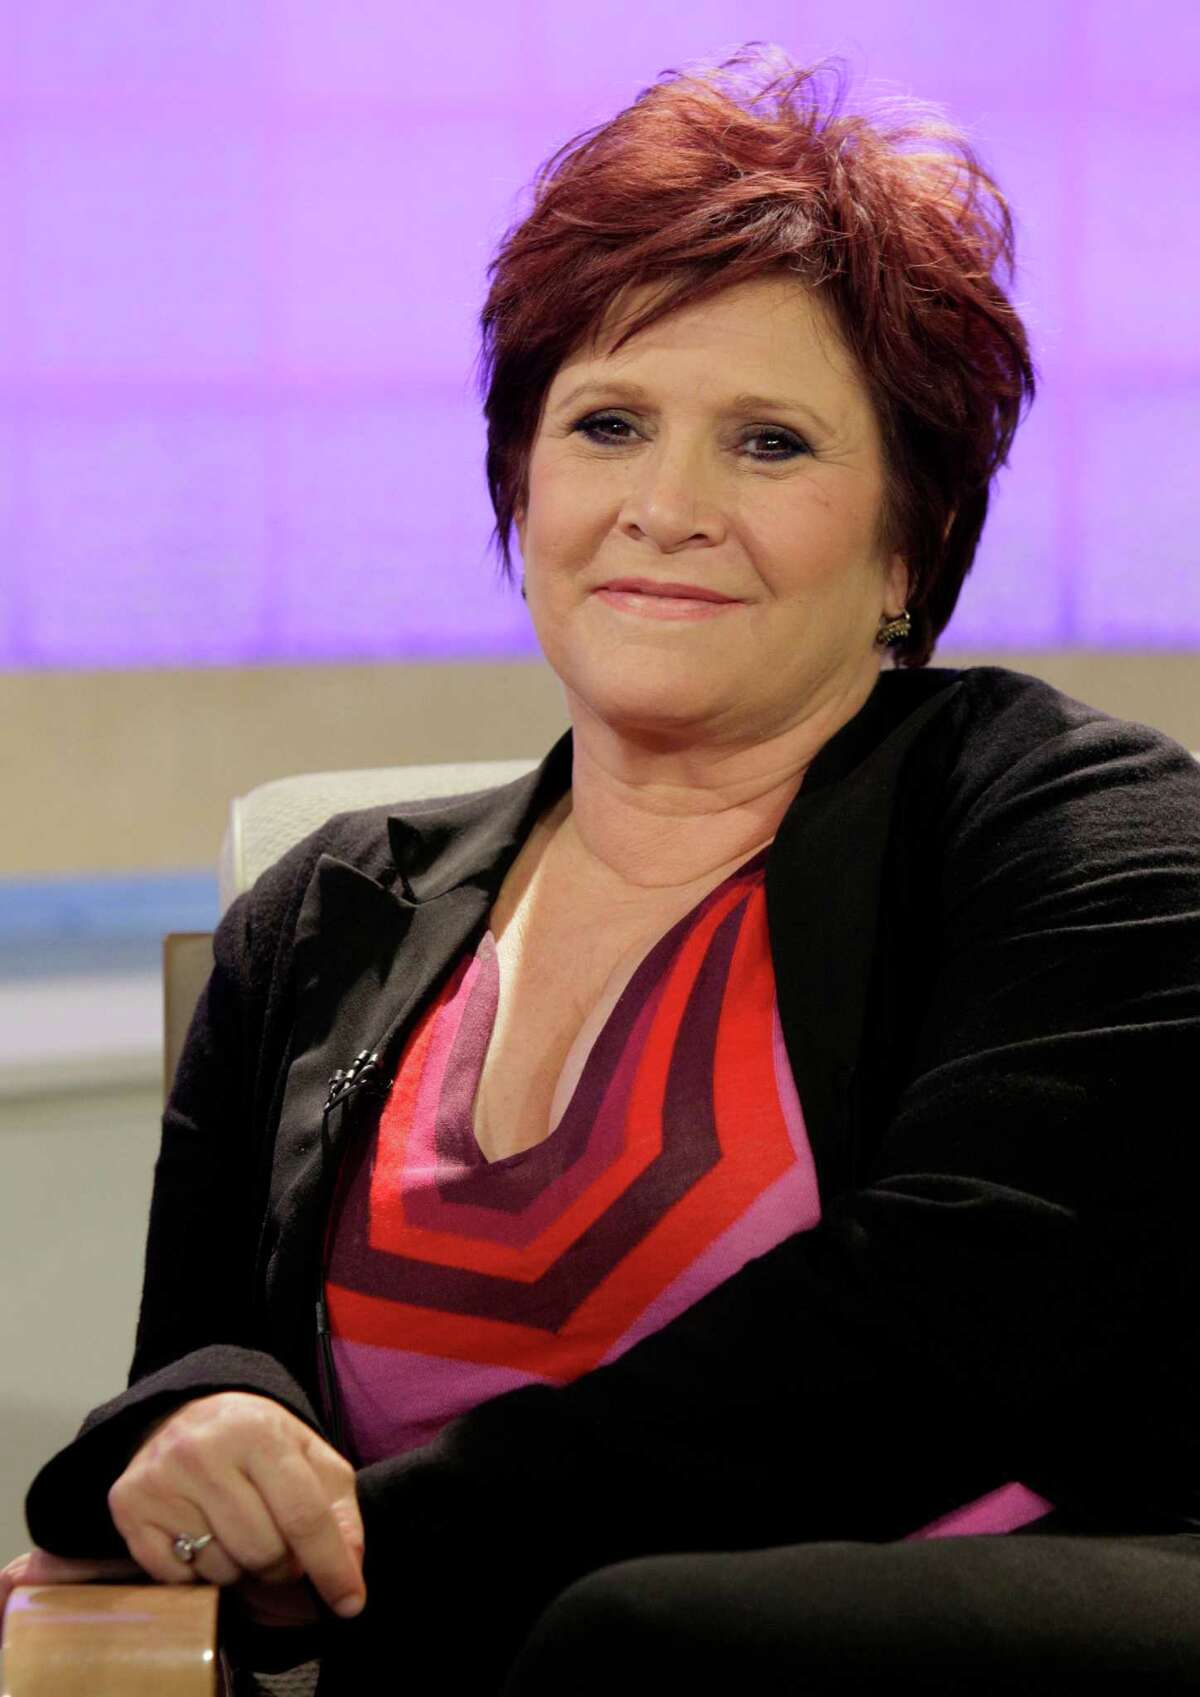 FILE - In this Tuesday, Sept. 29, 2009 file photo, actress and writer Carrie Fisher appears on the NBC